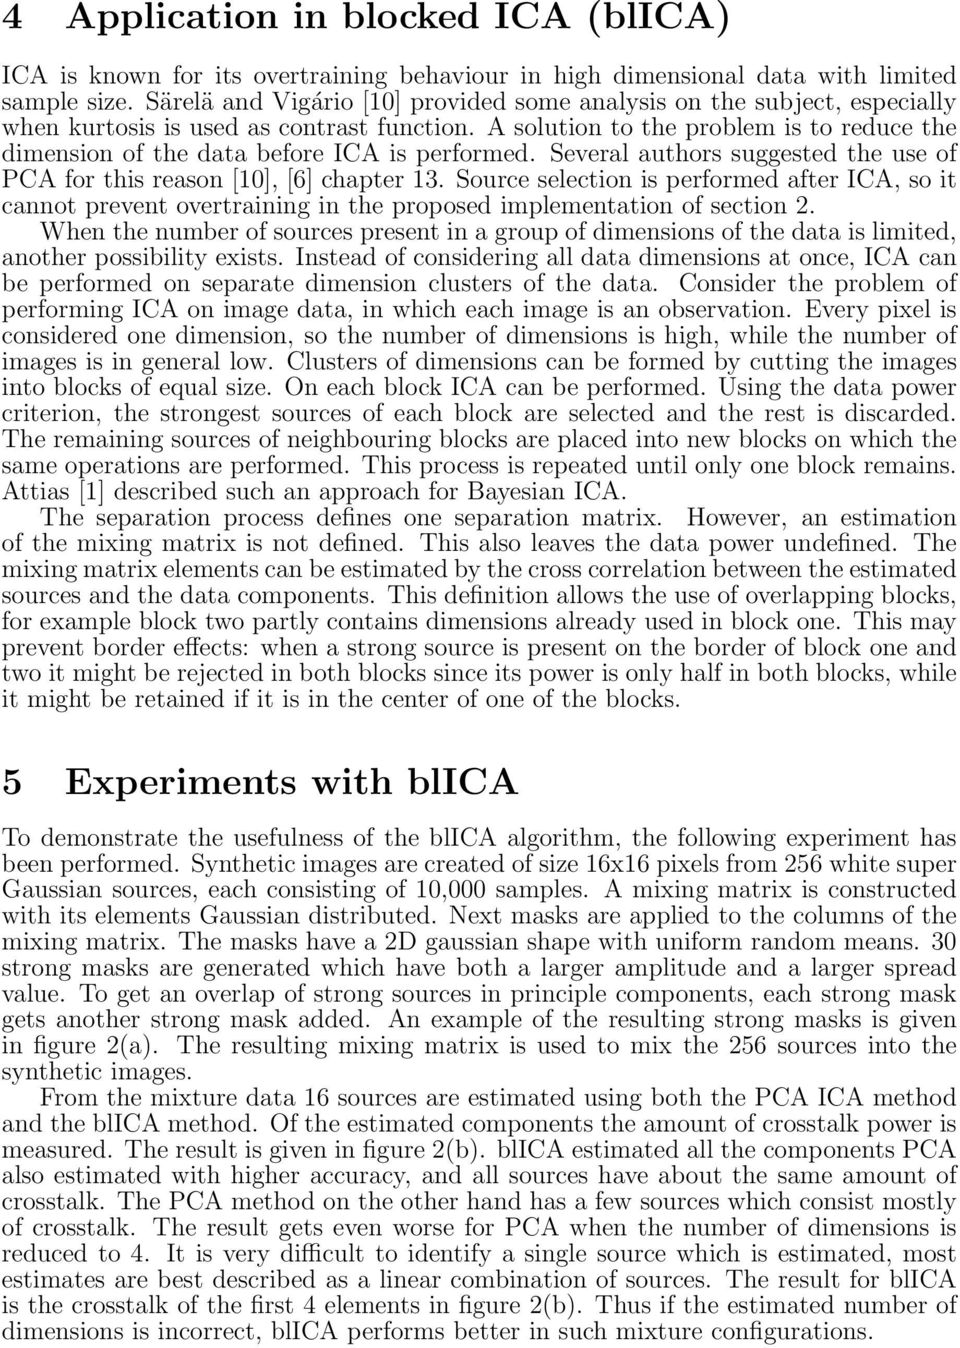 A solution to the problem is to reduce the dimension of the data before ICA is performed. Several authors suggested the use of PCA for this reason [1], [6] chapter 13.